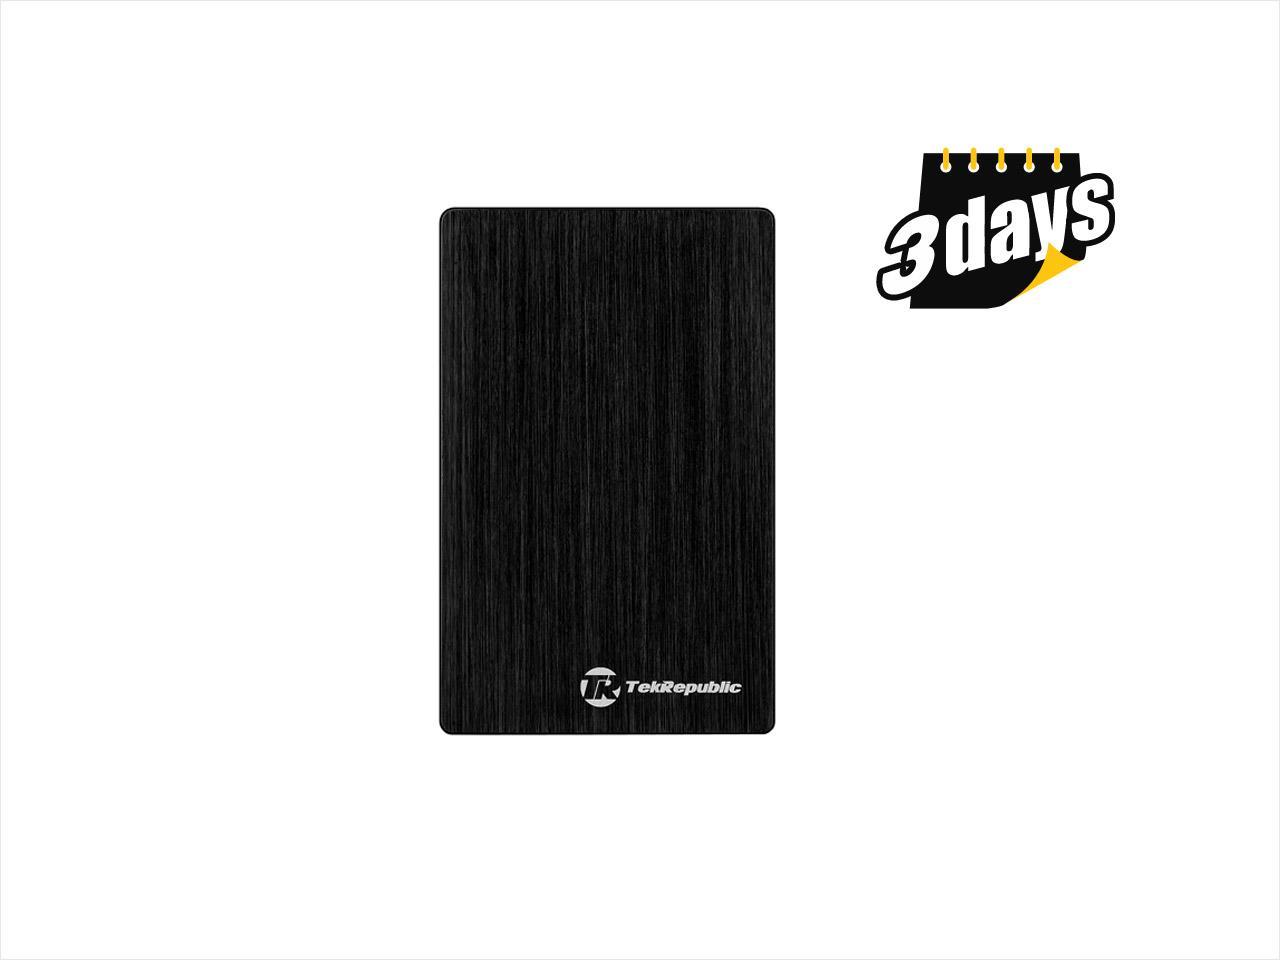 "Tek Republic TUE-300 Aluminum Brash 2.5"" Black USB 3.0 Hard Drive External Enclosure for 9.5mm 7mm HDD and SSD (Optimized for SSD, Support UASP)"